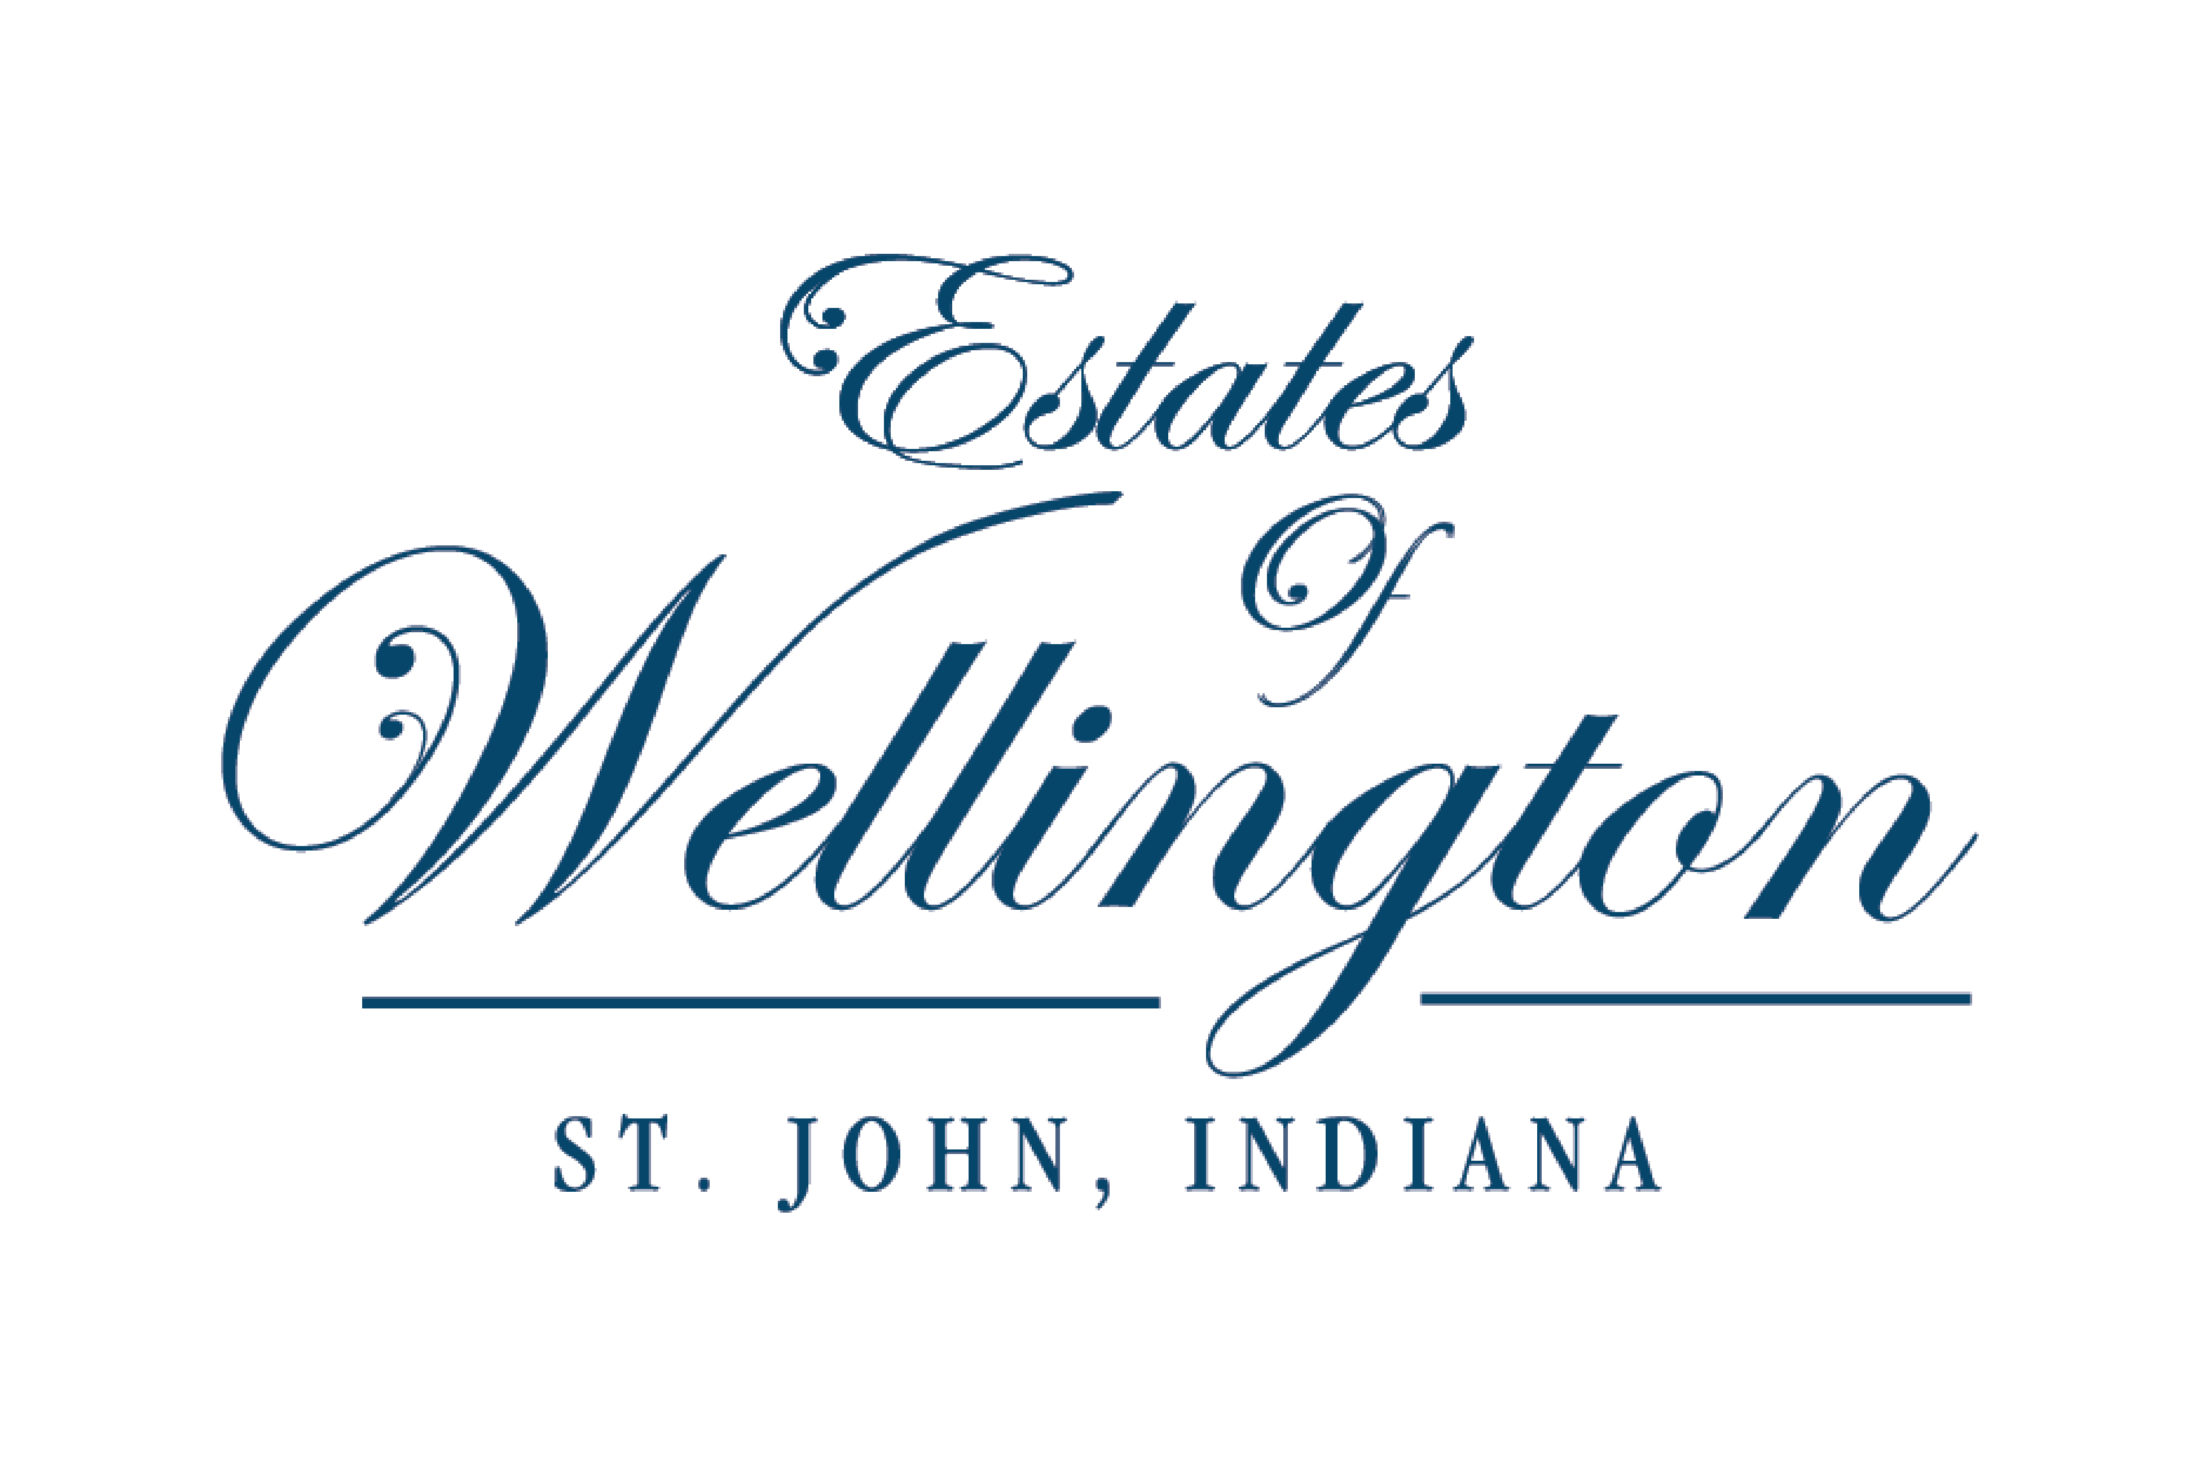 estates of wellington logo-02